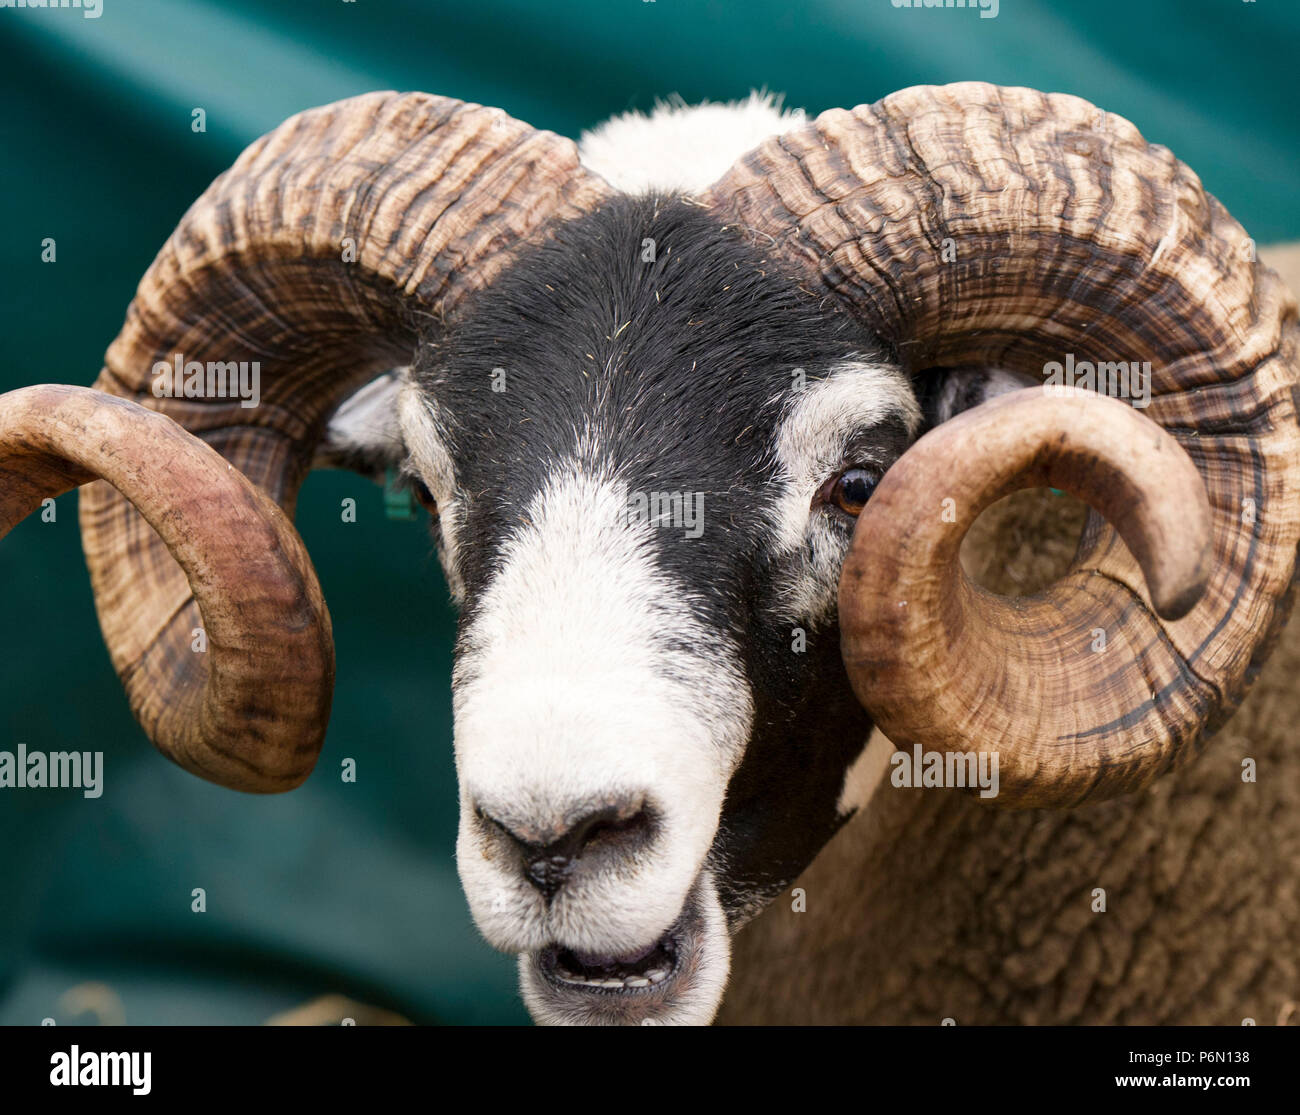 .RHS 2018: Portrait of a Blacface Ram at Royal Highland Show,Ingliston, Edinburgh, Scotland - Stock Image